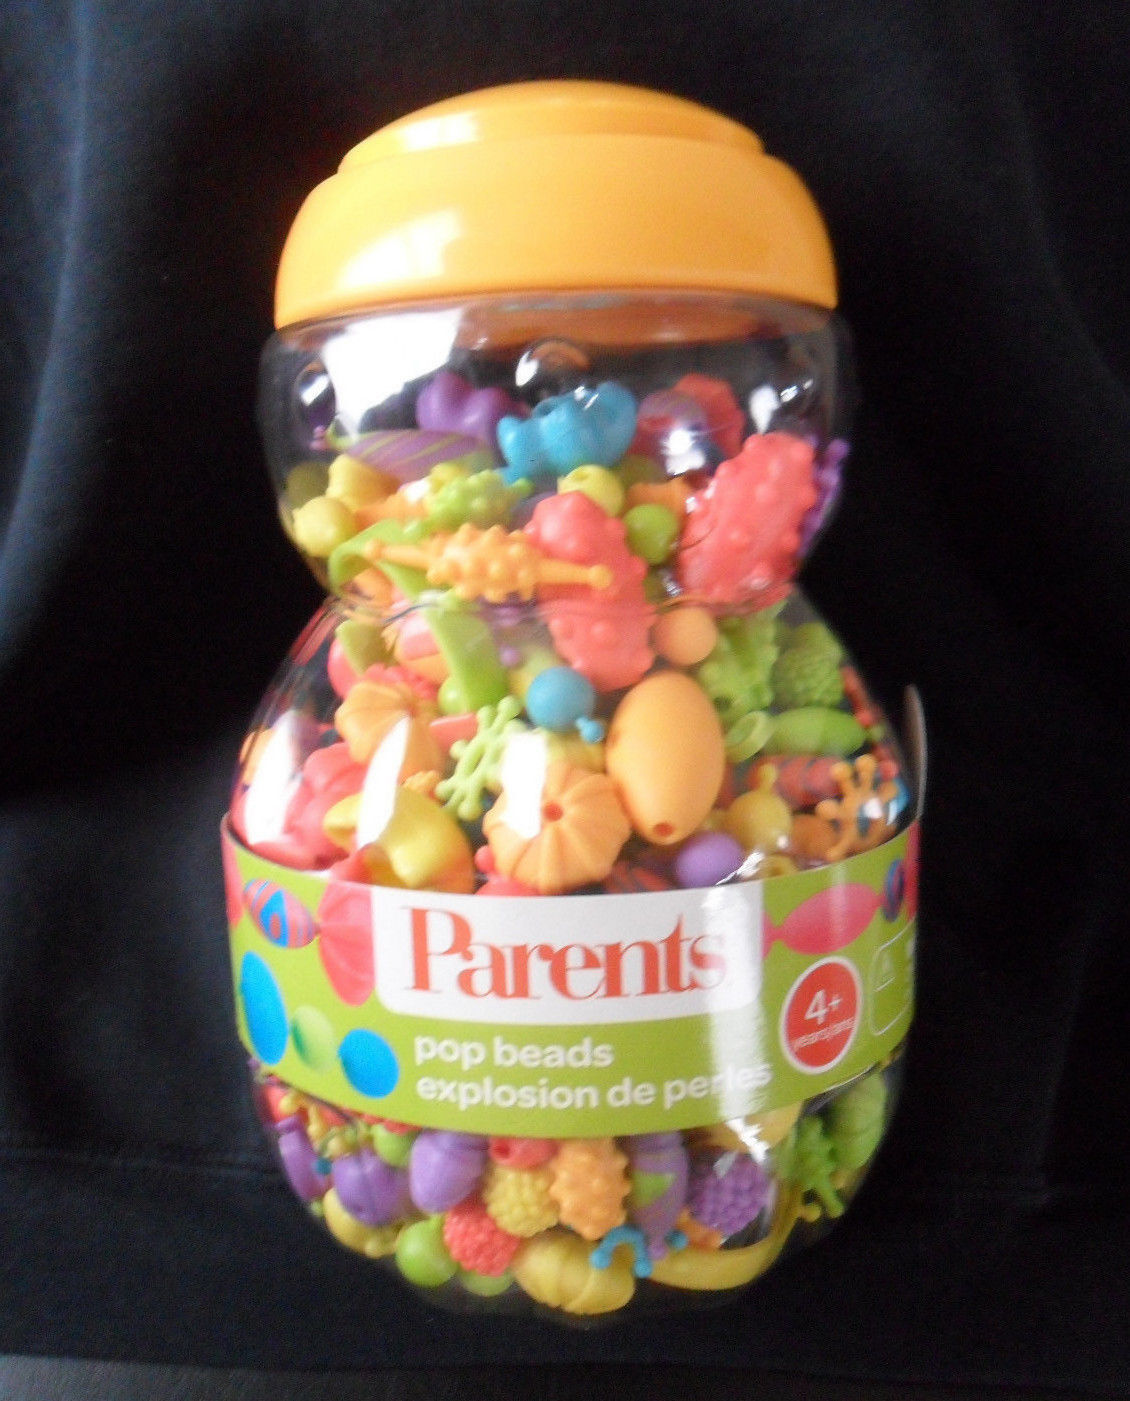 Parents Pop Beads Kids Snap Together Jewelry Craft